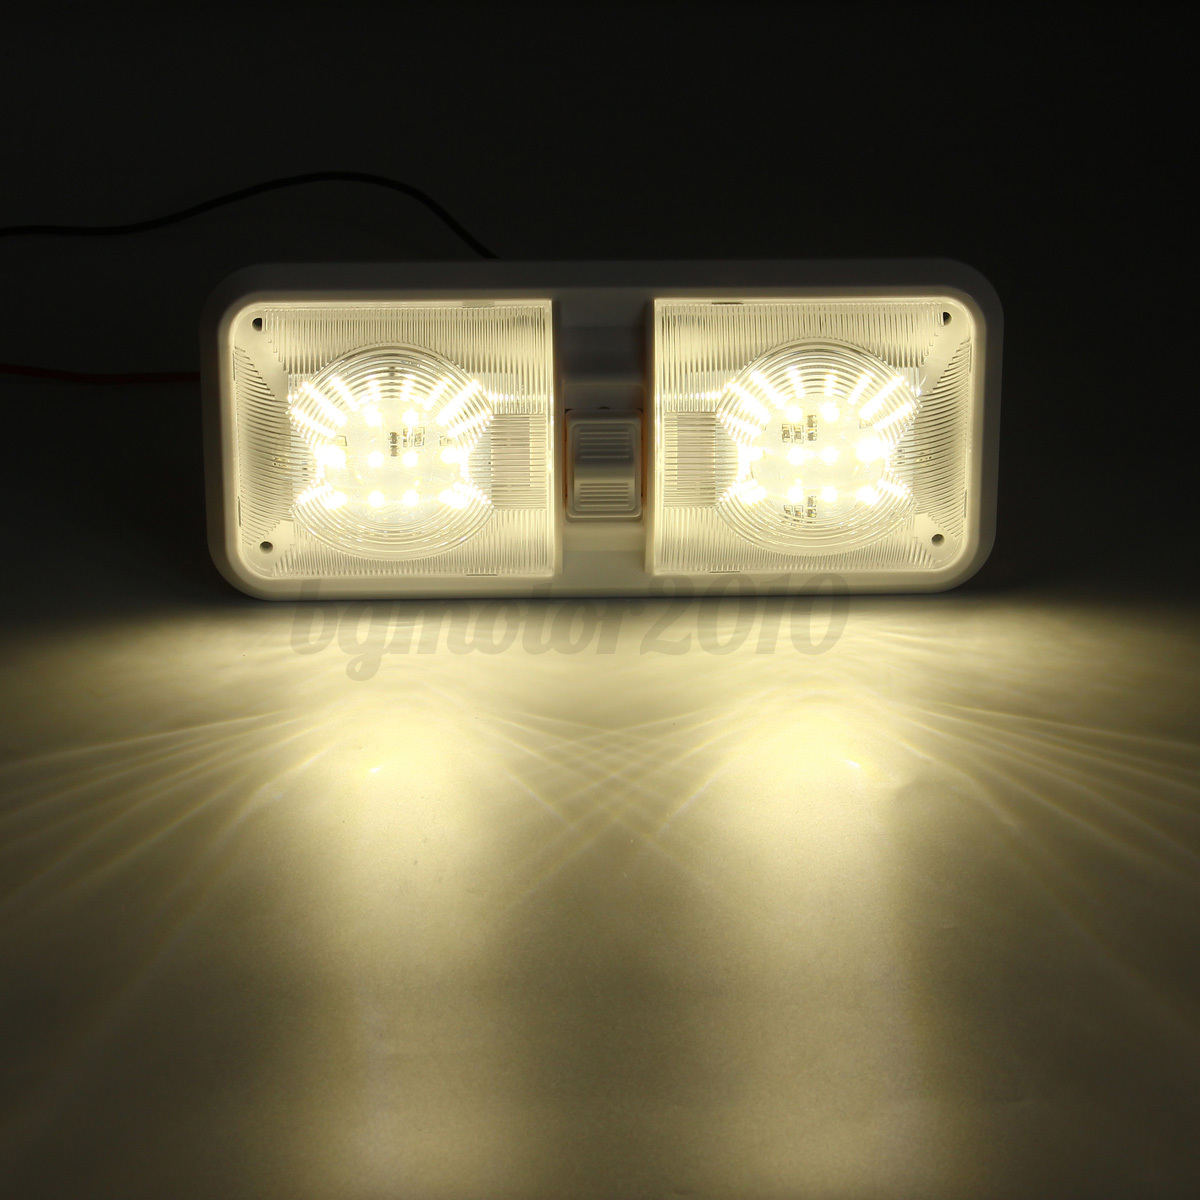 12v 48 Led Double Dome Roof Ceiling Interior Light For Rv